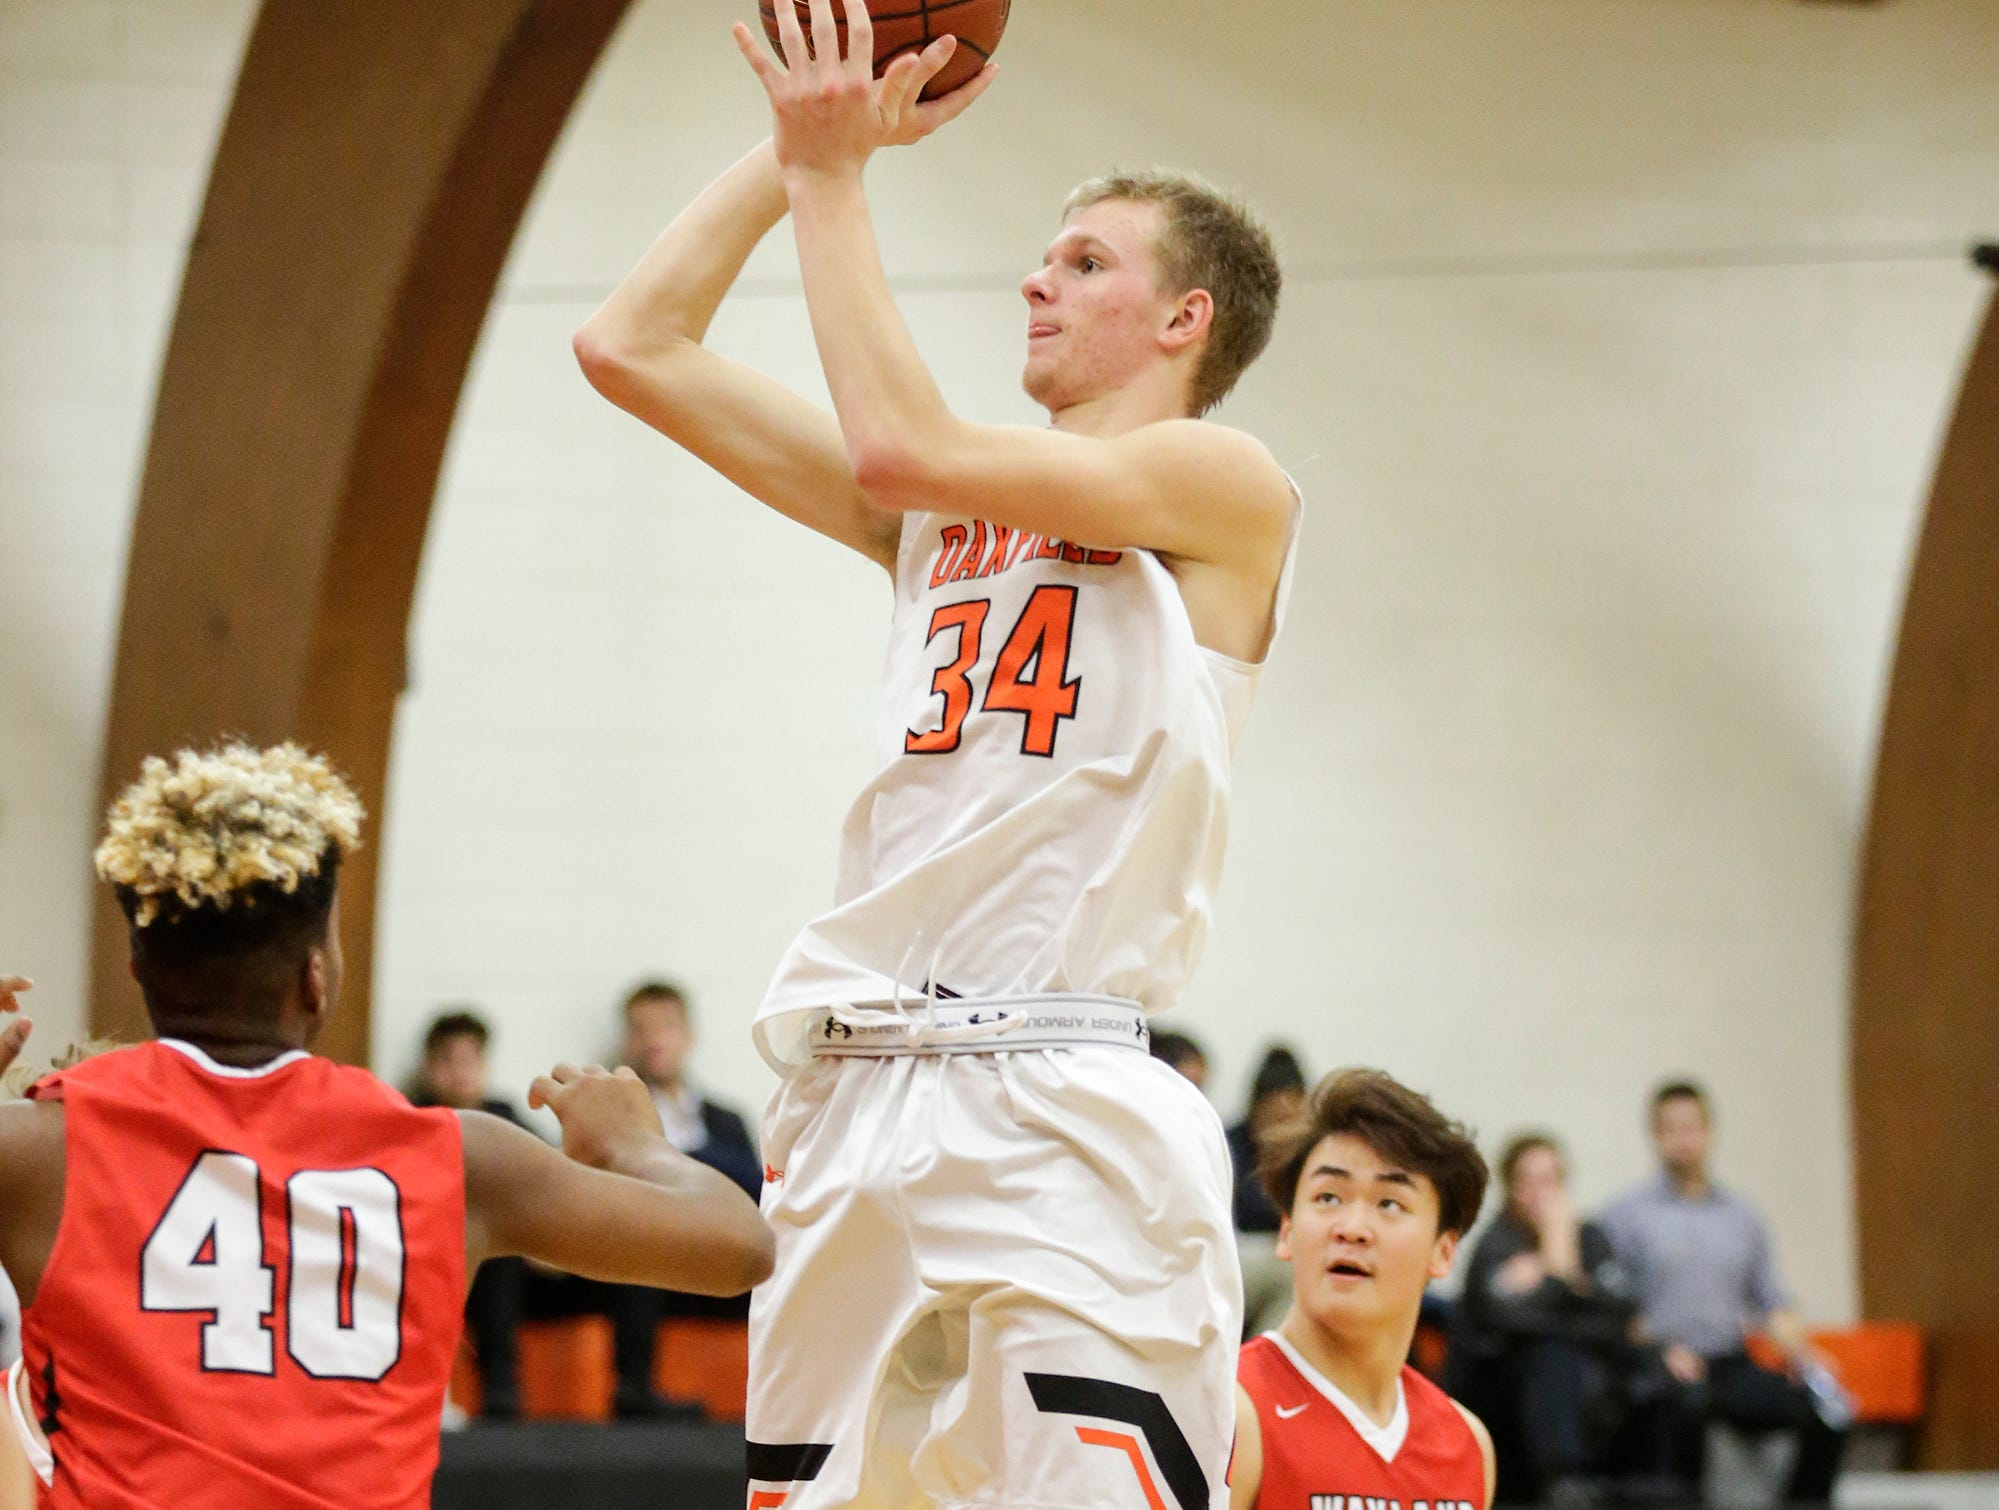 Oakfield High School boys basketball's Jaxson Hofman attempts a basket against Wayland Academy January 11, 2019 during their game in Oakfield. Oakfield won the game 56-48. Doug Raflik/USA TODAY NETWORK-Wisconsin